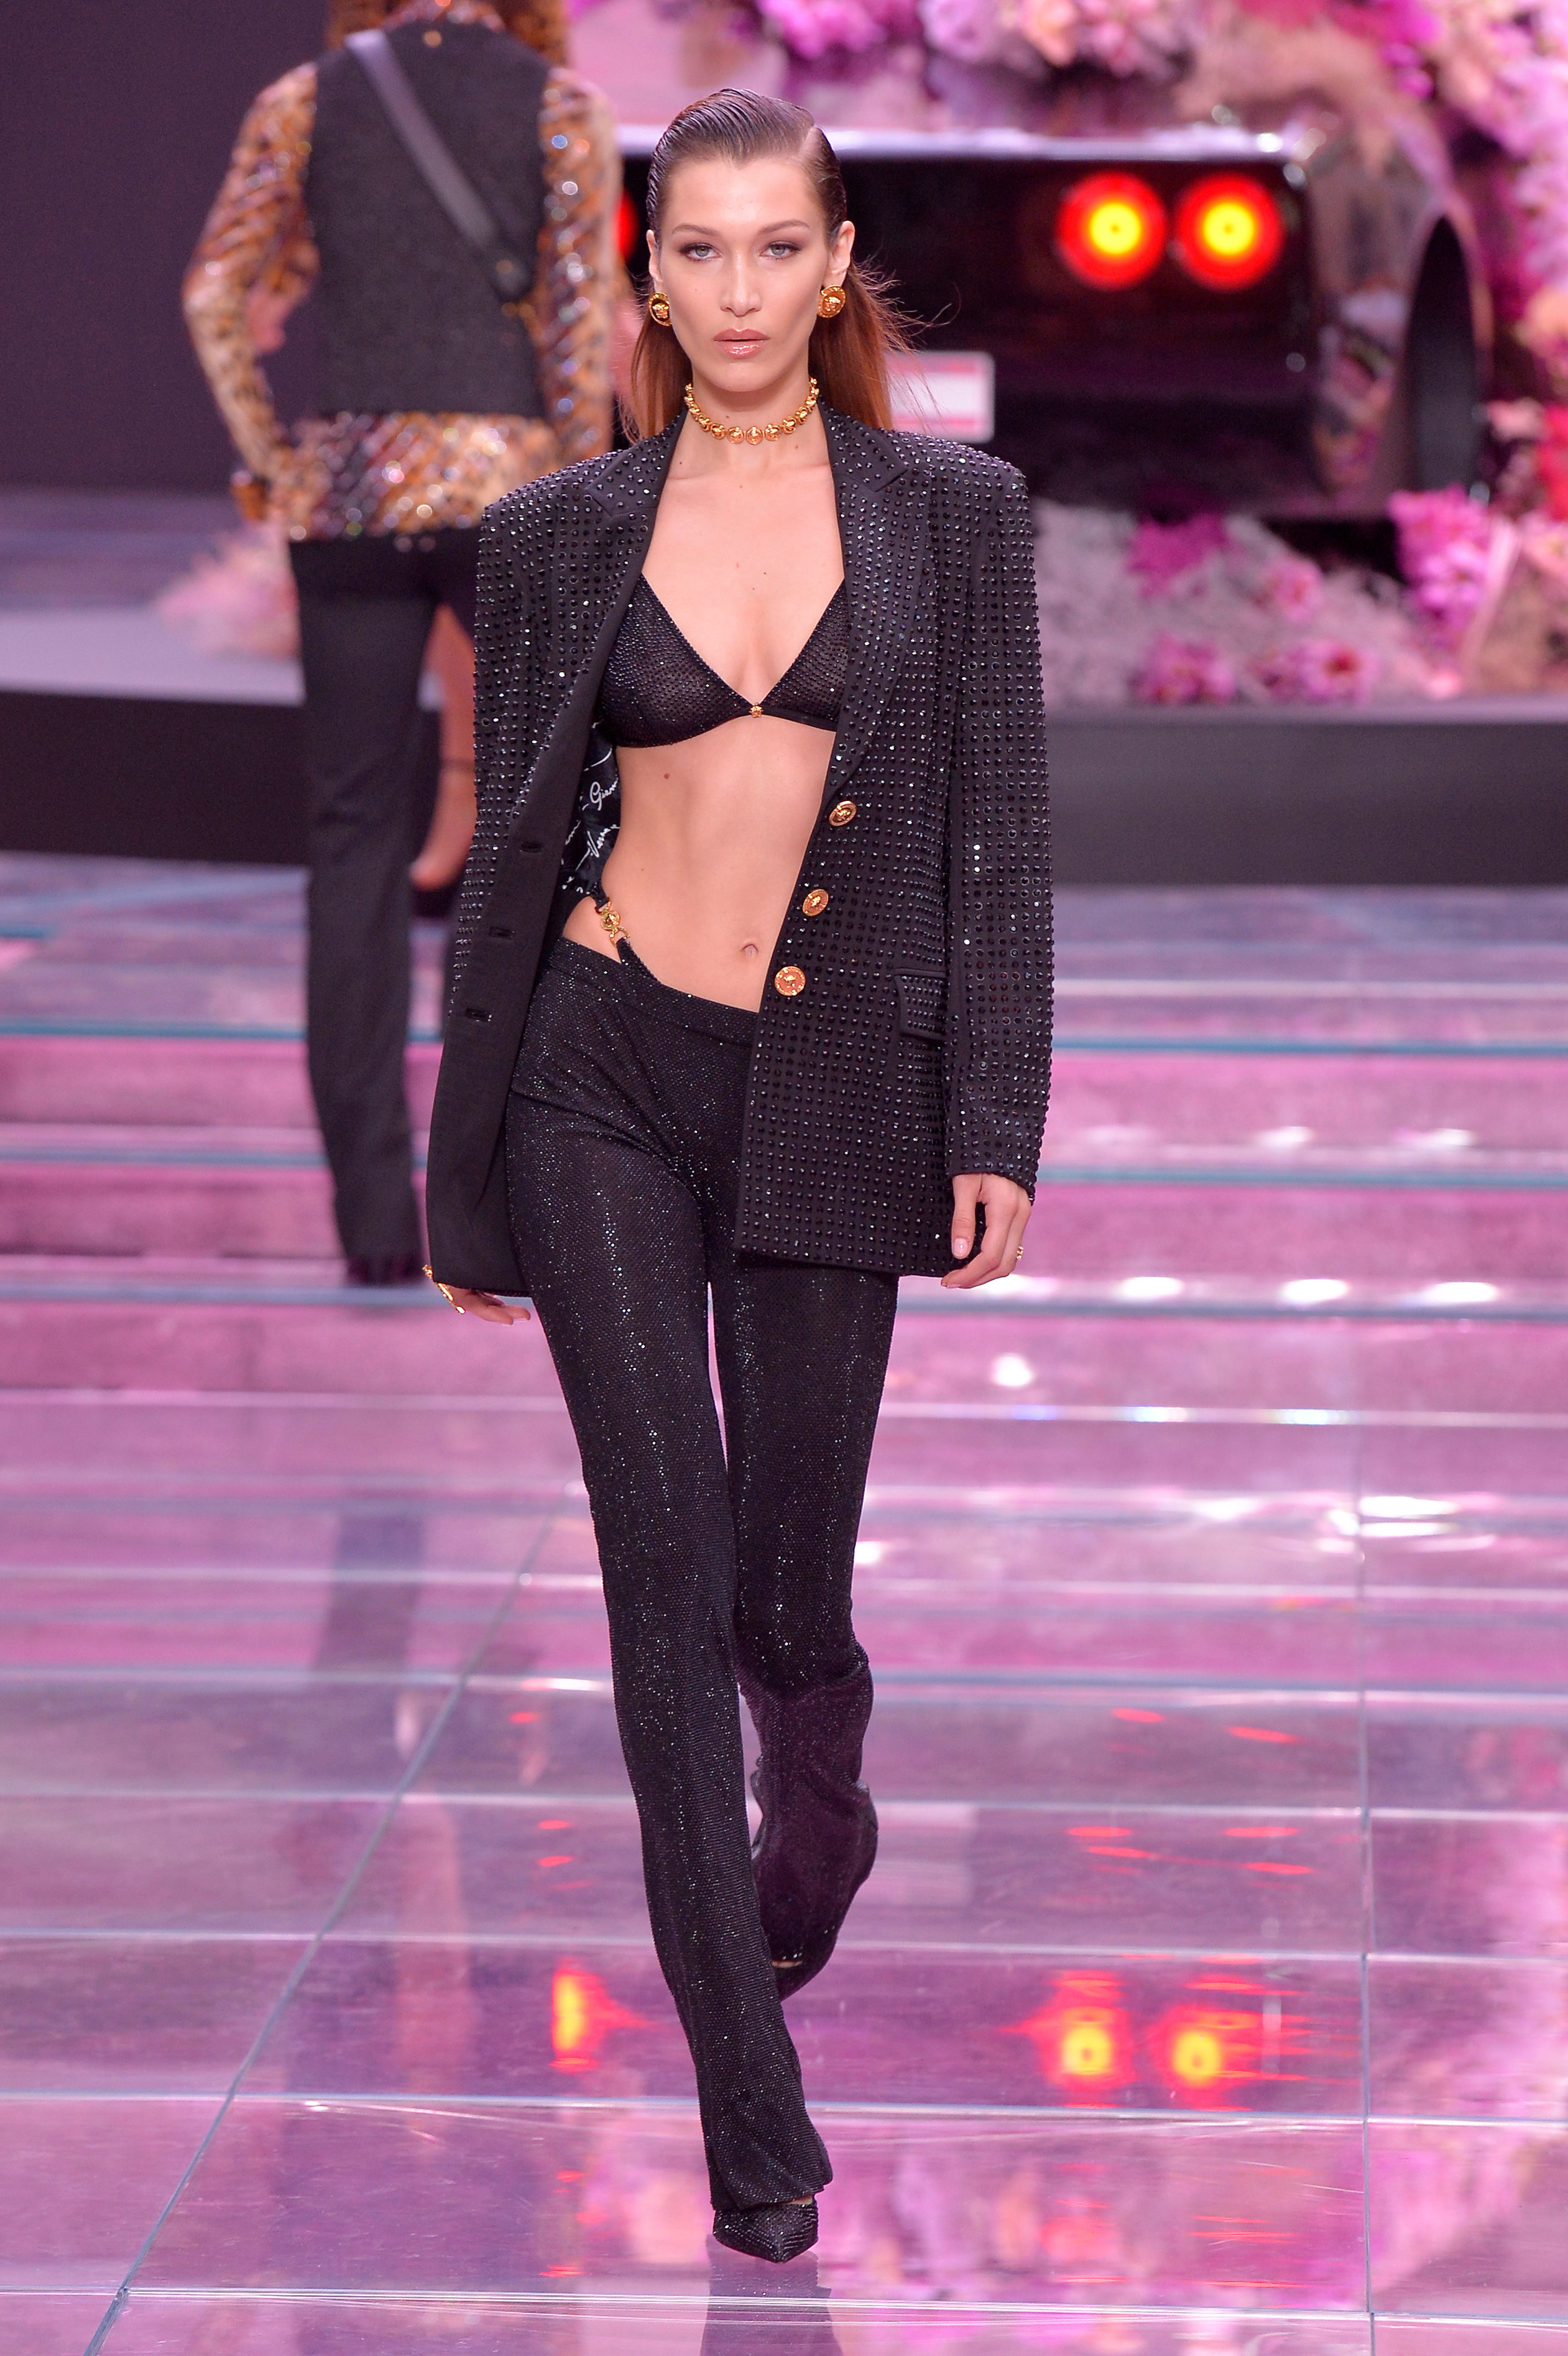 Bella Hadid walks on the catwalk for the Versace show for Spring/Summer 2020 at Milan Fashion Week Men's on June 15, 2019.